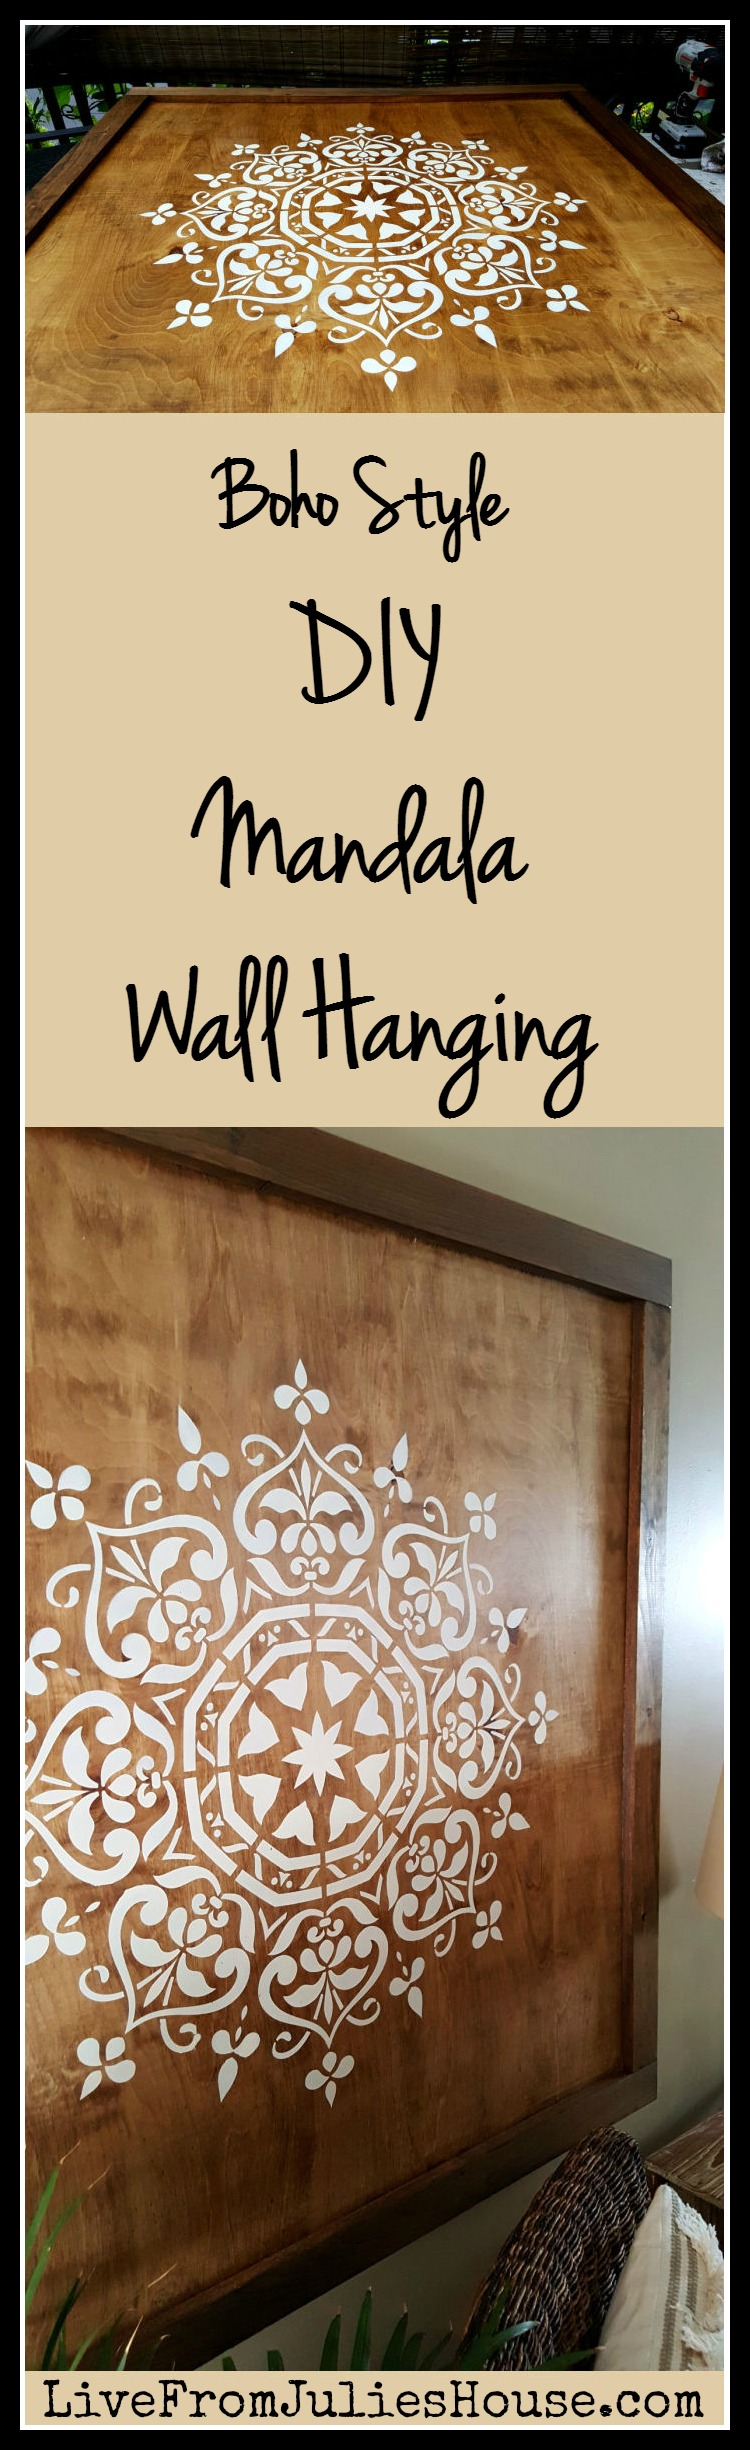 Diy mandala wall hanging live from julies house boho style diy mandala wall hanging want to add a dramatic boho style piece of amipublicfo Images